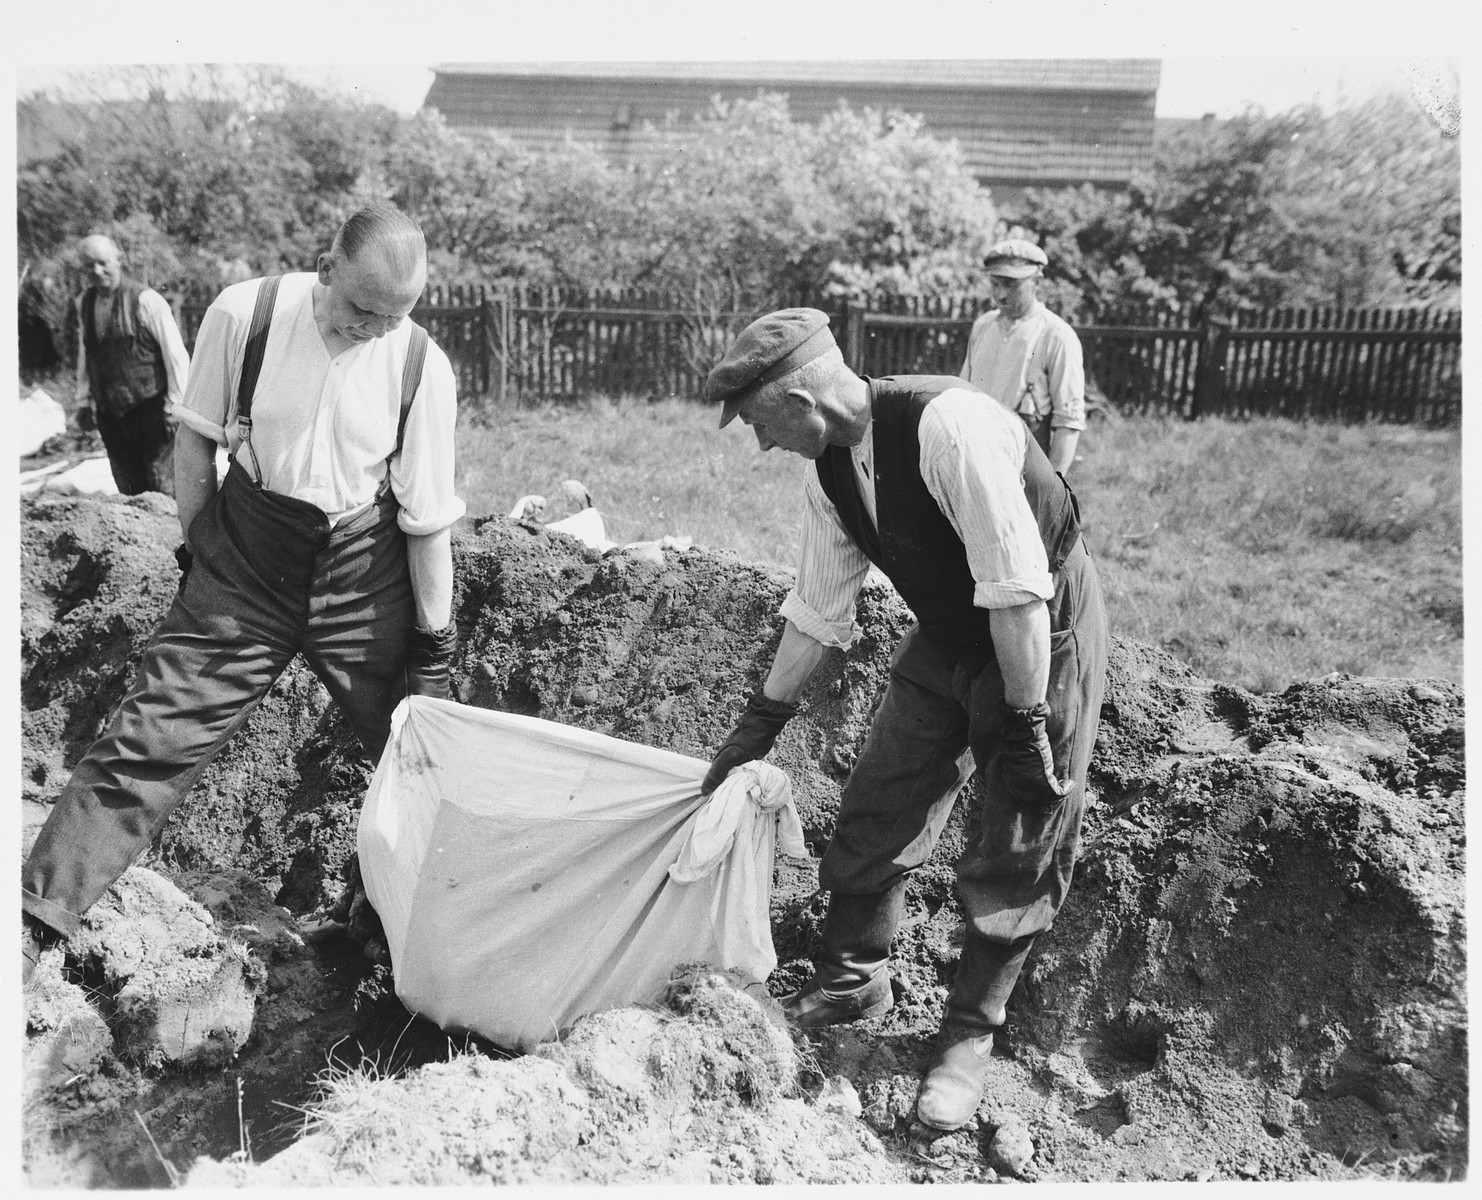 German civilians from Estedt remove the bodies of Polish, Russian and Jewish slave laborers from a mass grave for proper reburial.